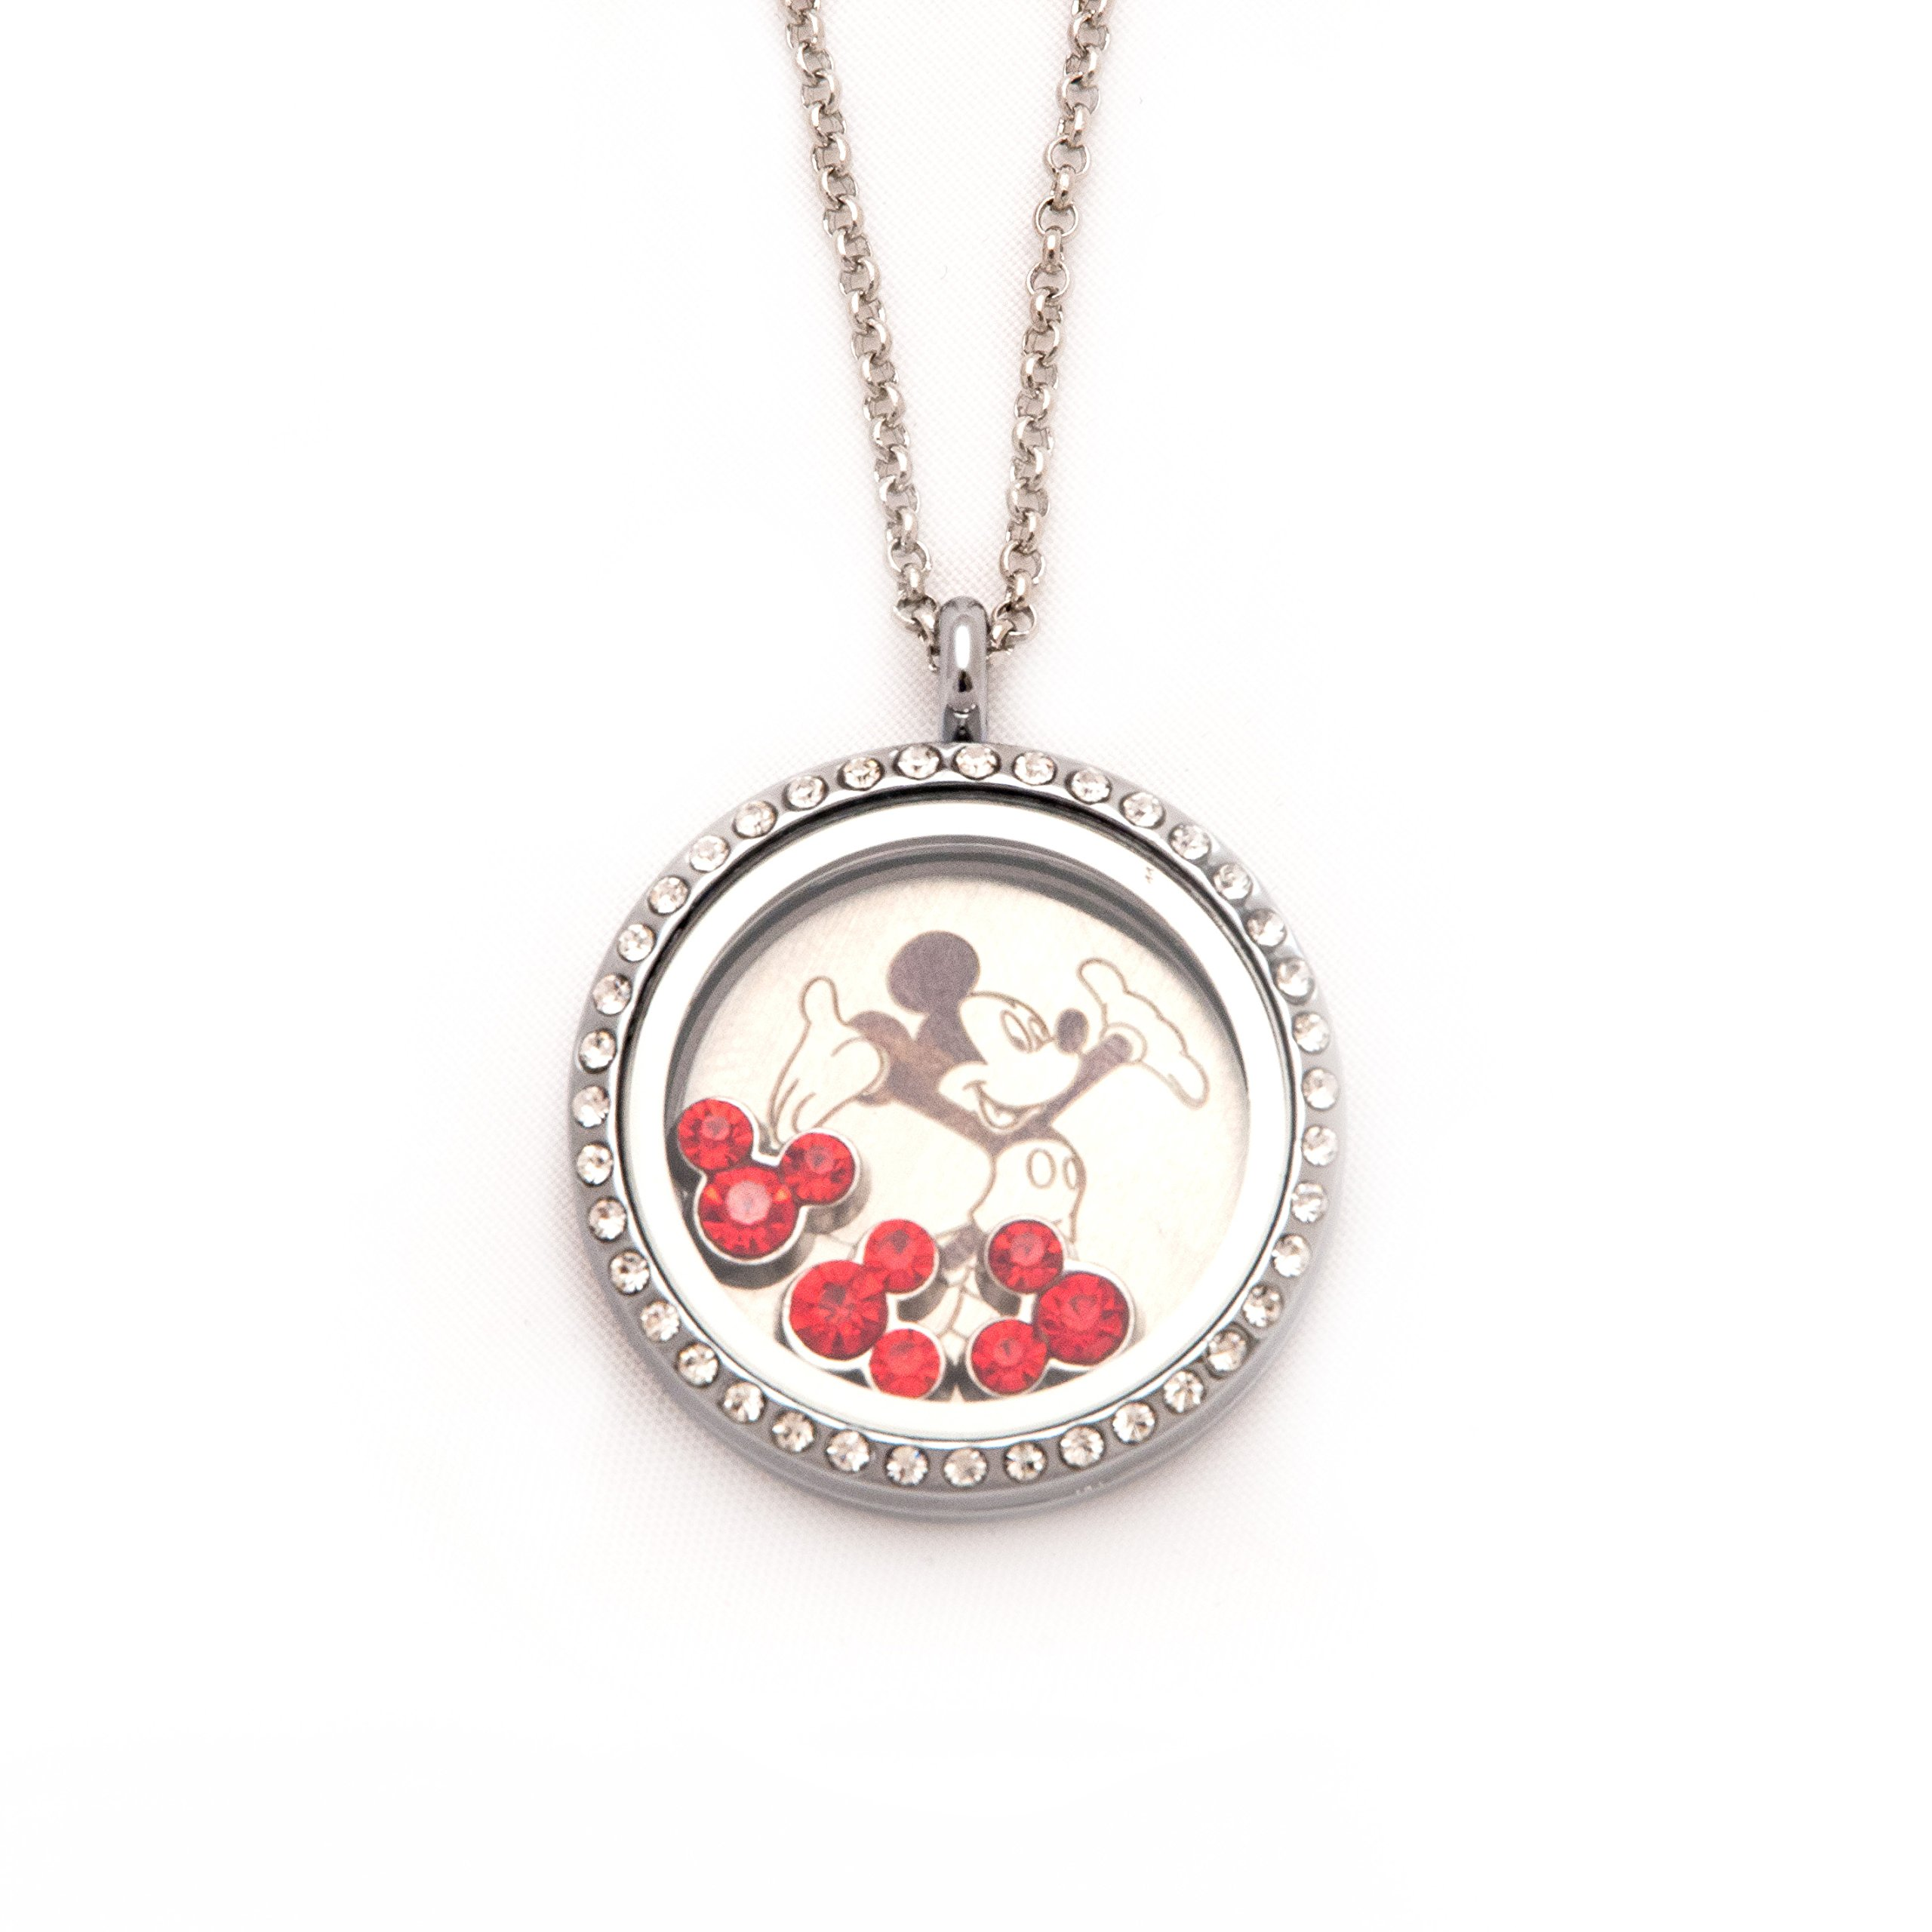 Fuller Joy 30mm Round Rhinestone Magnetic Floating Locket Necklace with Charms (Mickey)